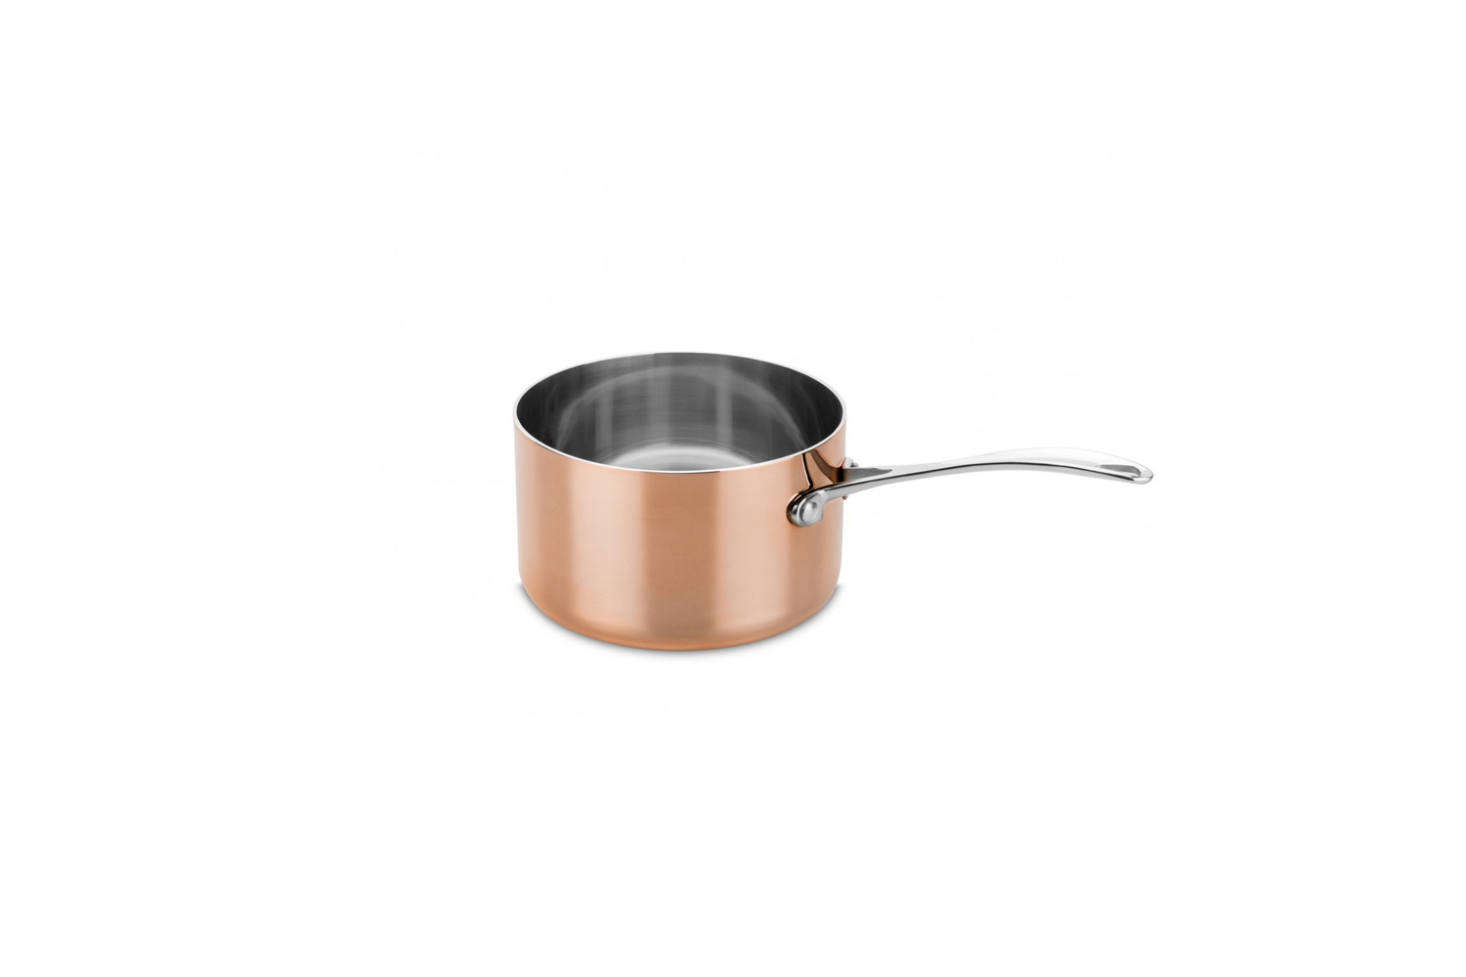 The Luxury Art Copper Saucepan comes in a set with a copper frying pan for €425 at Mepra, the Italian makers of some of our favorite flatware.